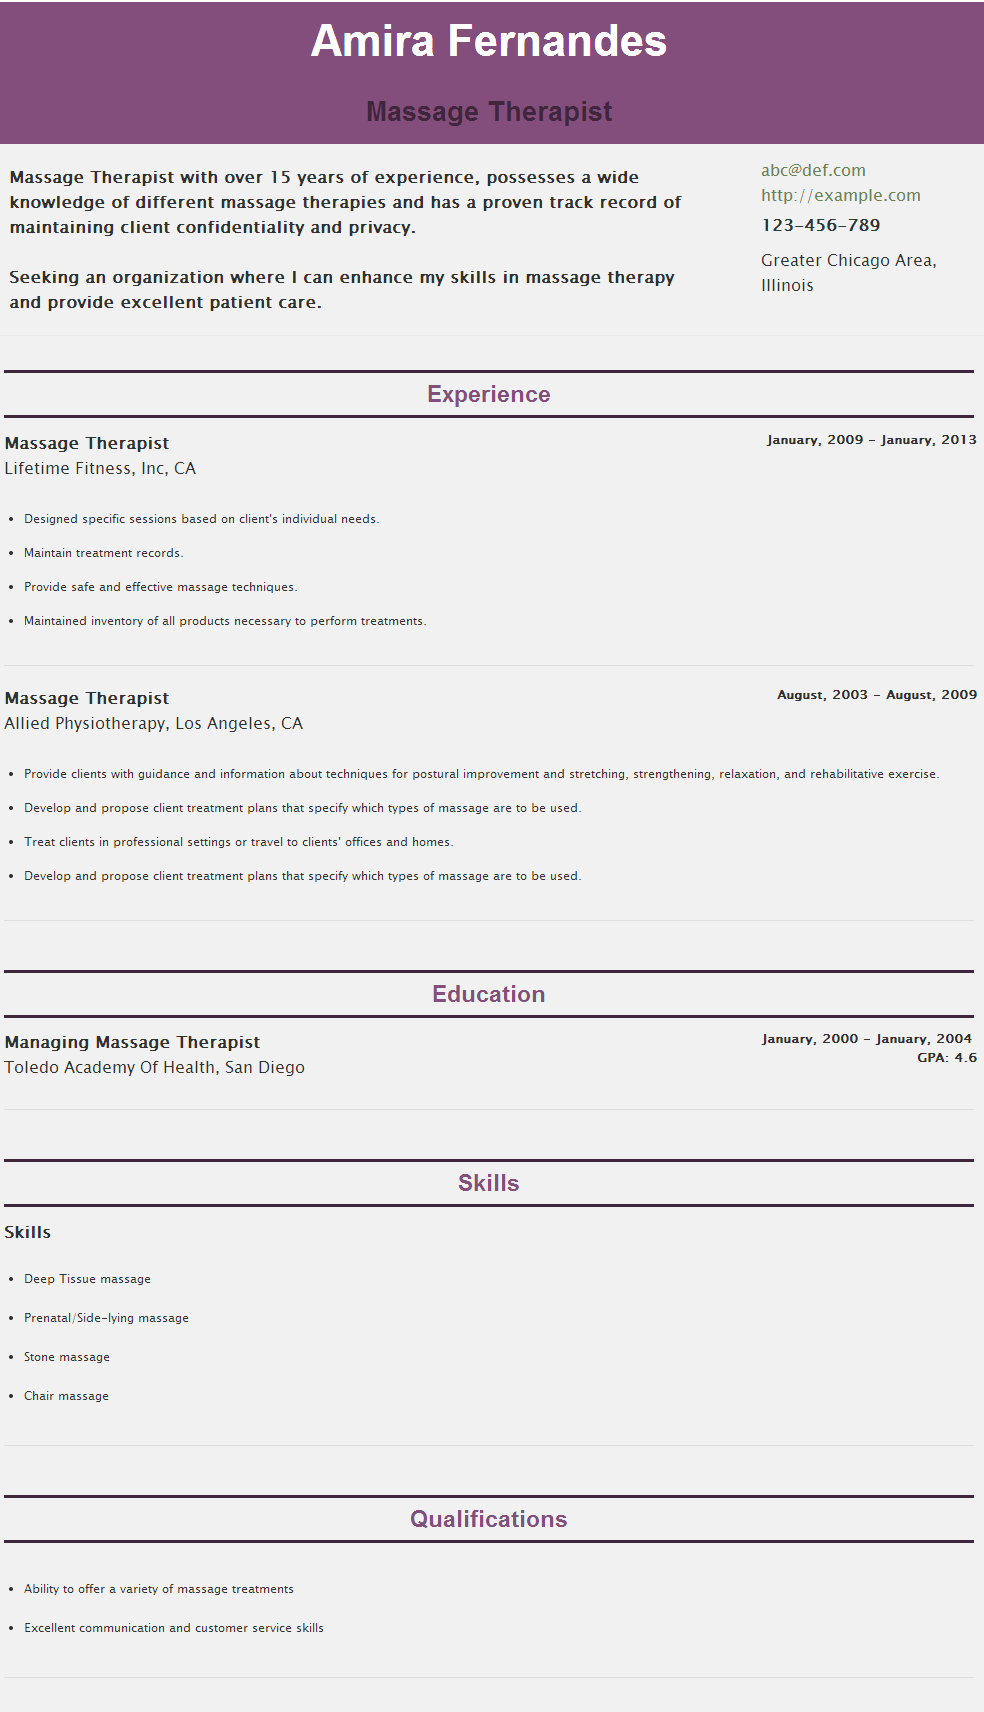 Resume For Massage therapist - https://hipcv.com/abc/r/massage ...